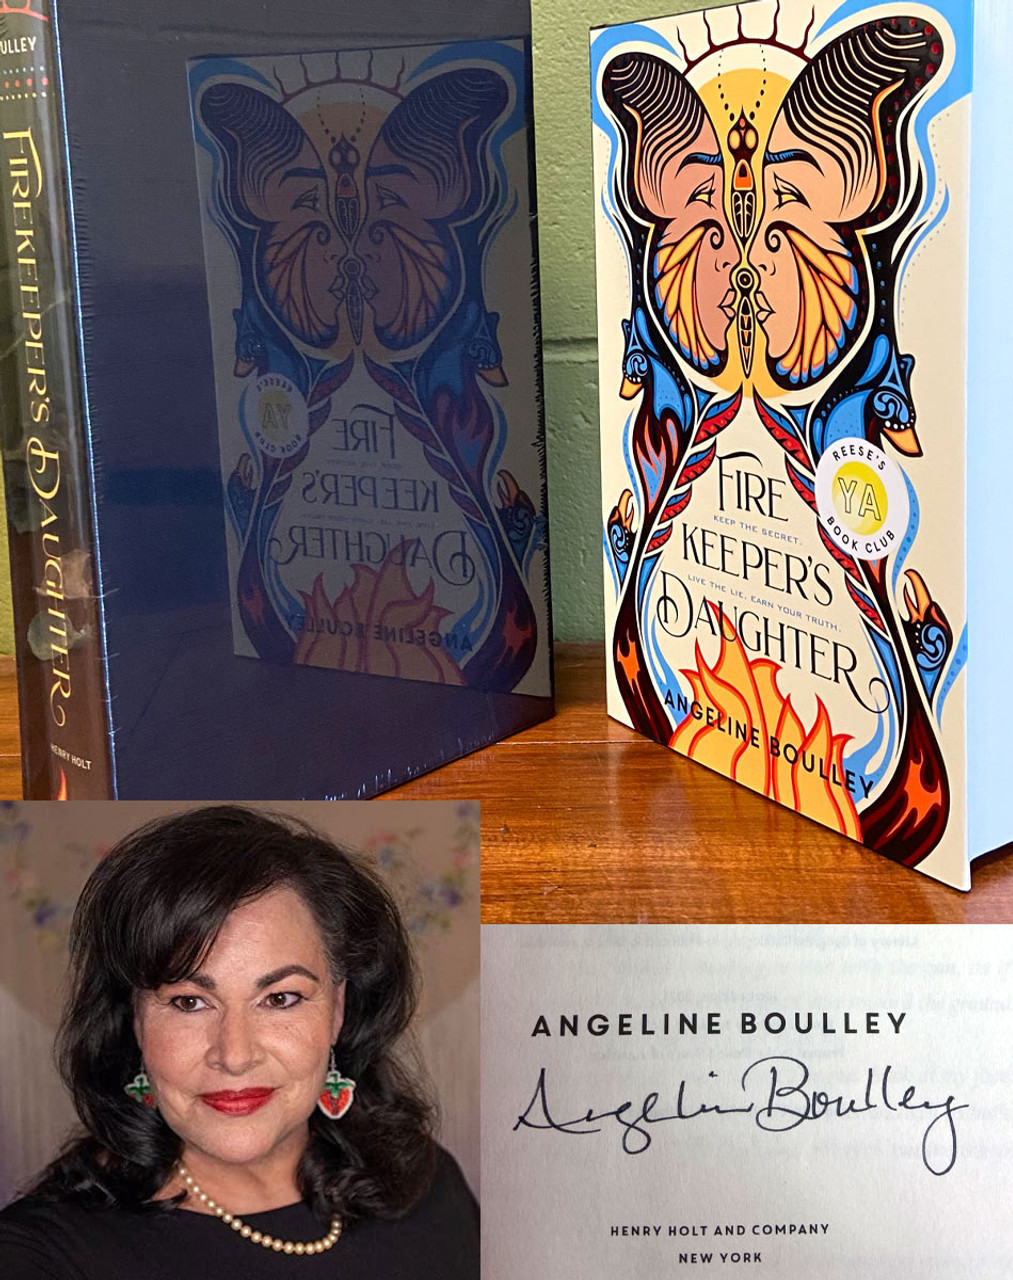 """Angeline Boulley """"Firekeeper's Daughter"""" Signed First Edition, Later Printing, Slip-cased Limited Edition of 40 w/COA [Sealed]"""